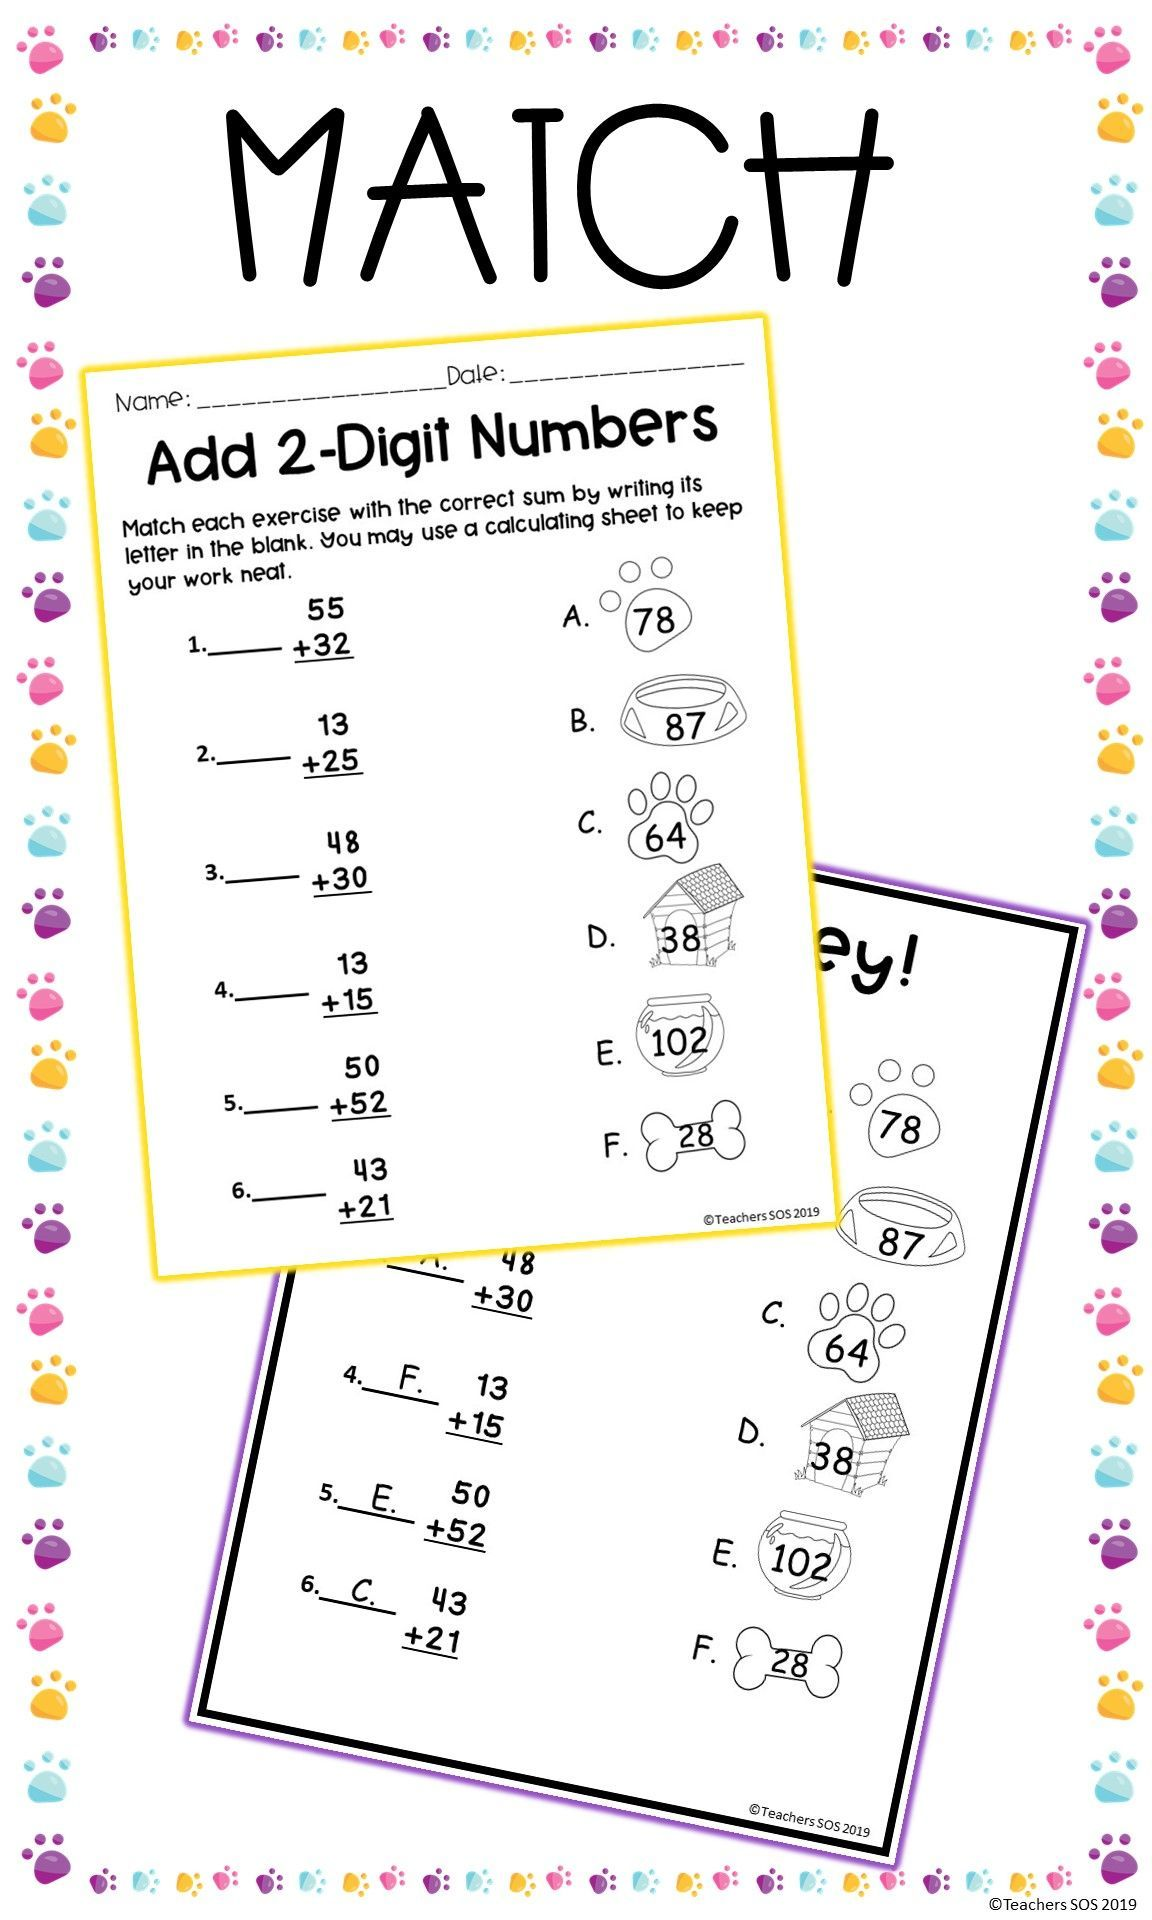 Adding Two Digit Numbers No Regrouping Worksheets Distance Learning Regrouping Distance Learning Practices Worksheets Adding two digit numbers worksheets